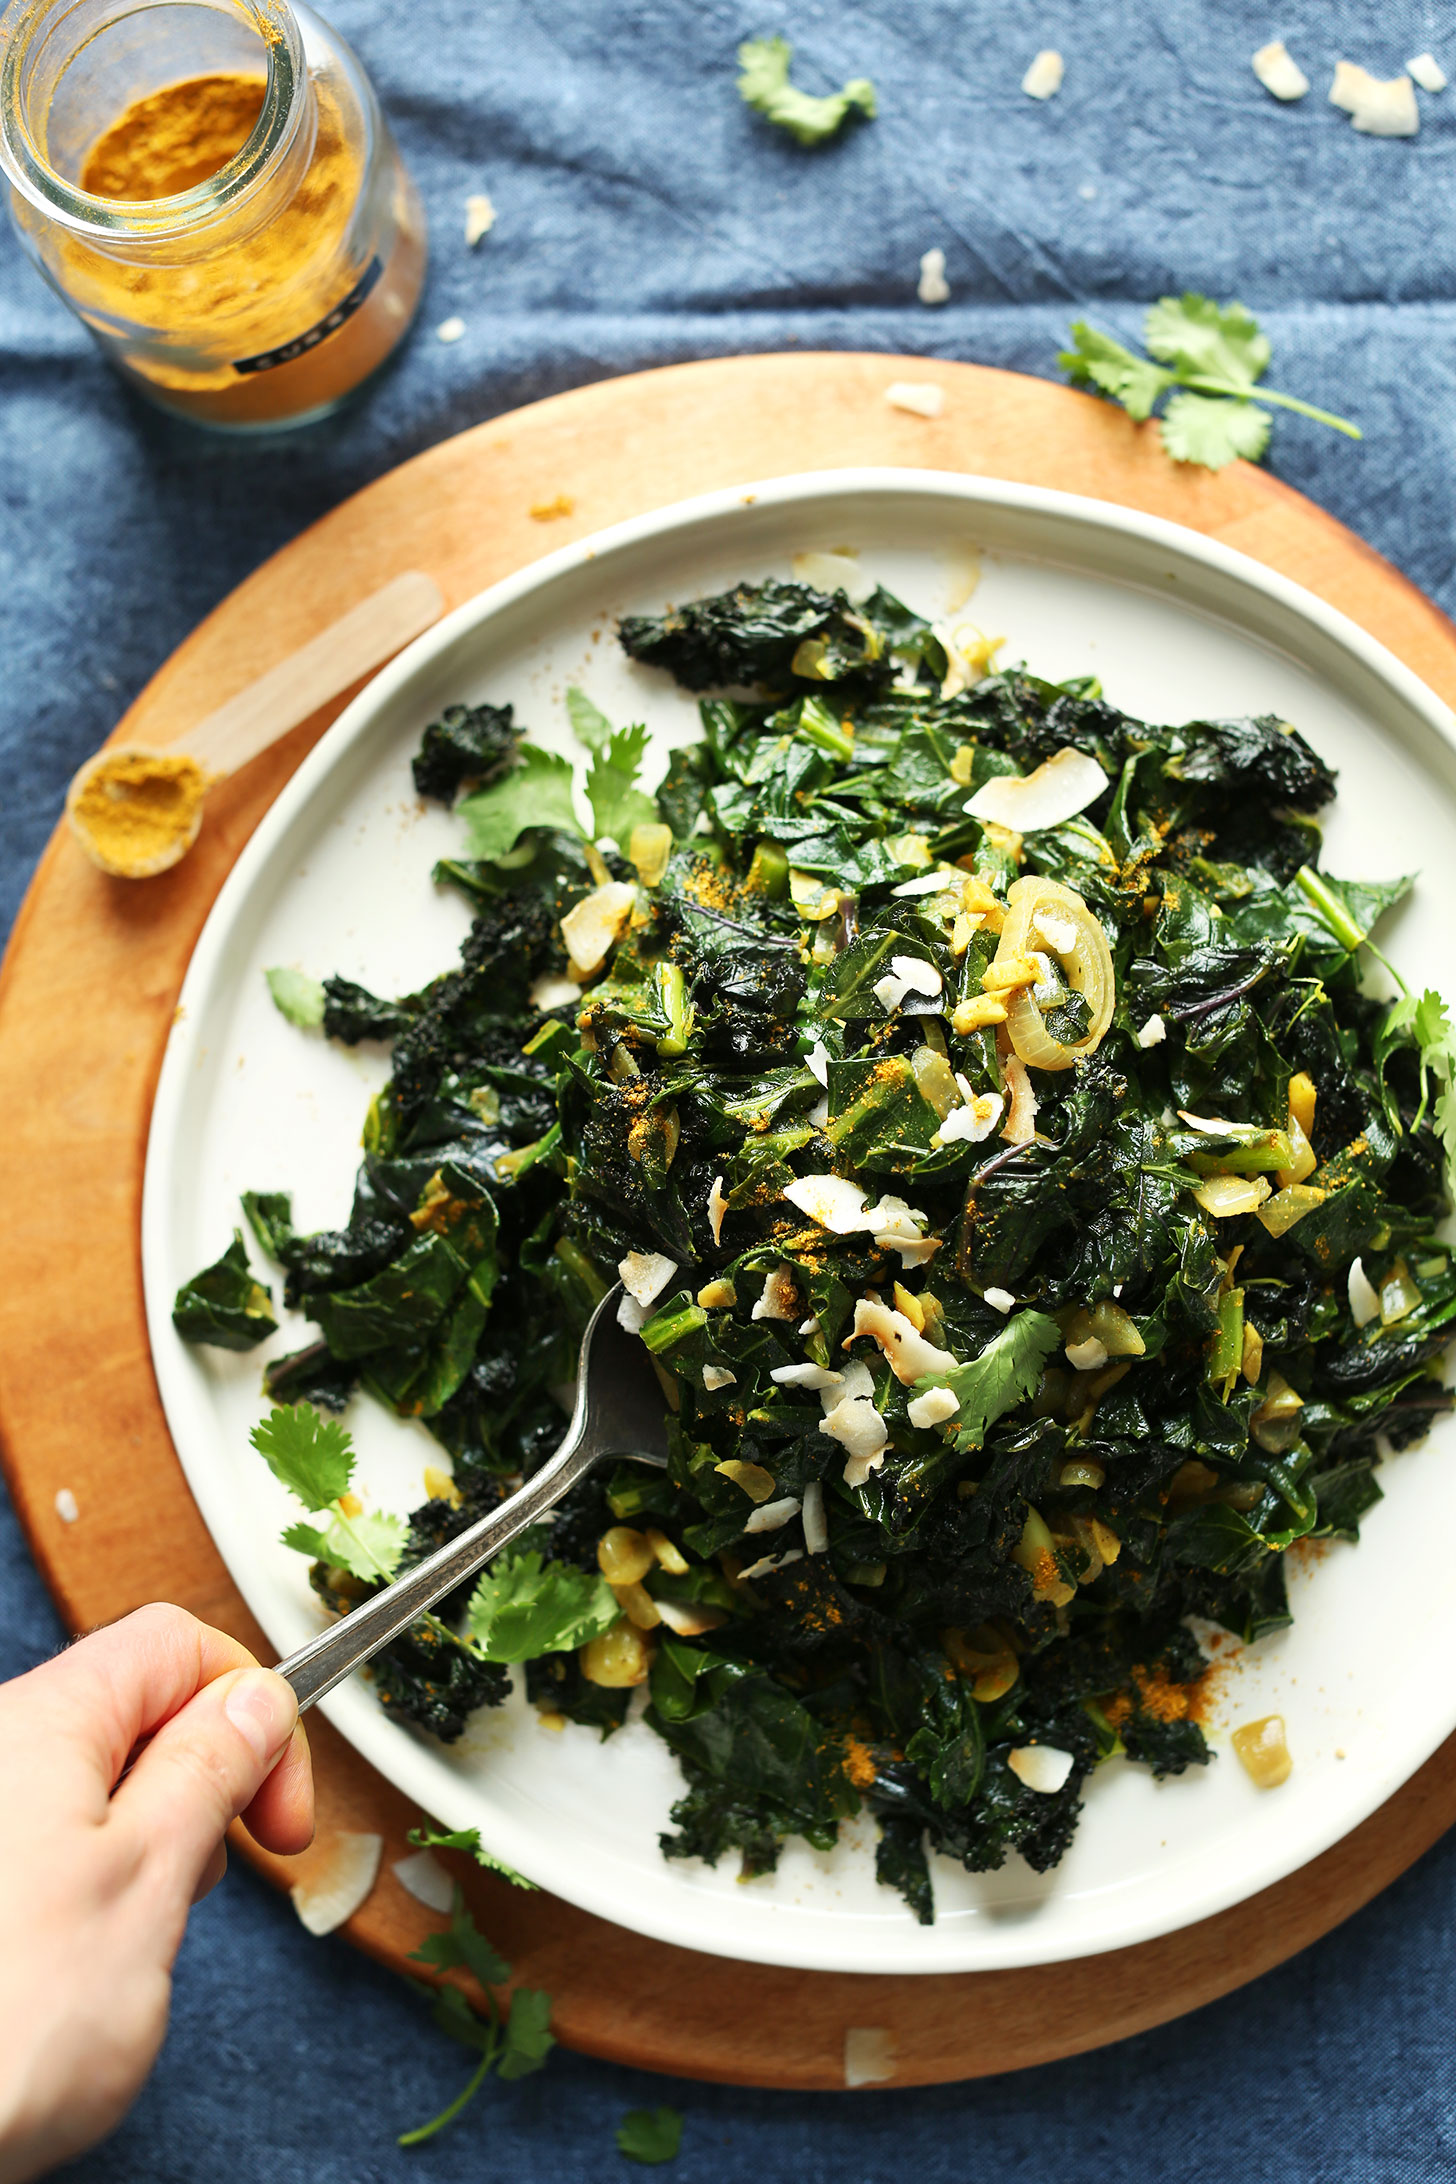 Grabbing a spoonful of our amazing Coconut Curried Greens recipe